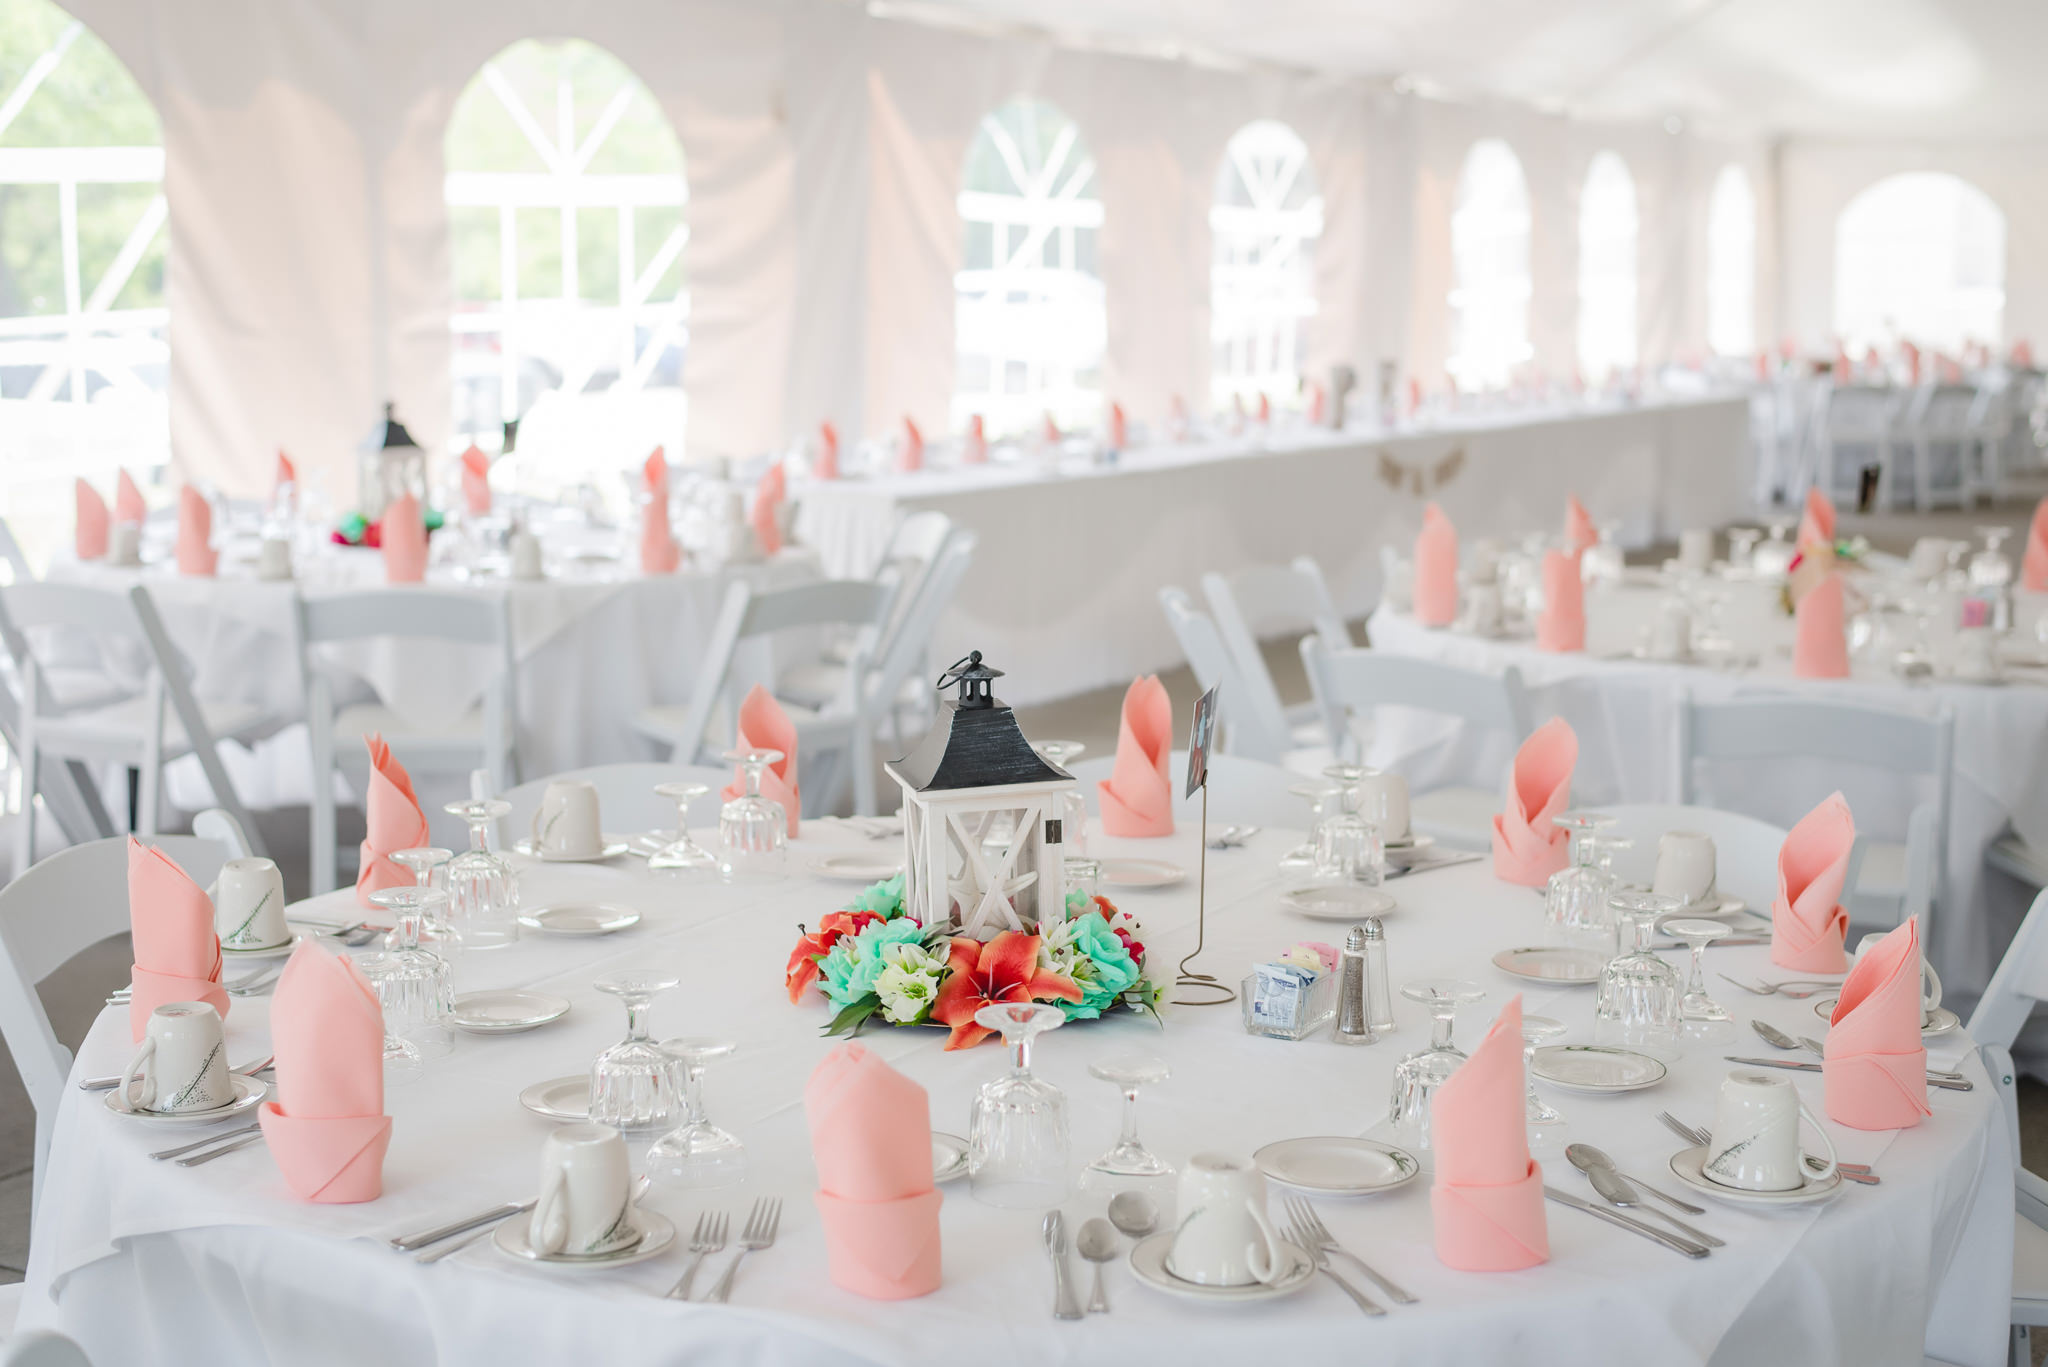 Tables decorated for a wedding reception inside a tent at Linden Hall